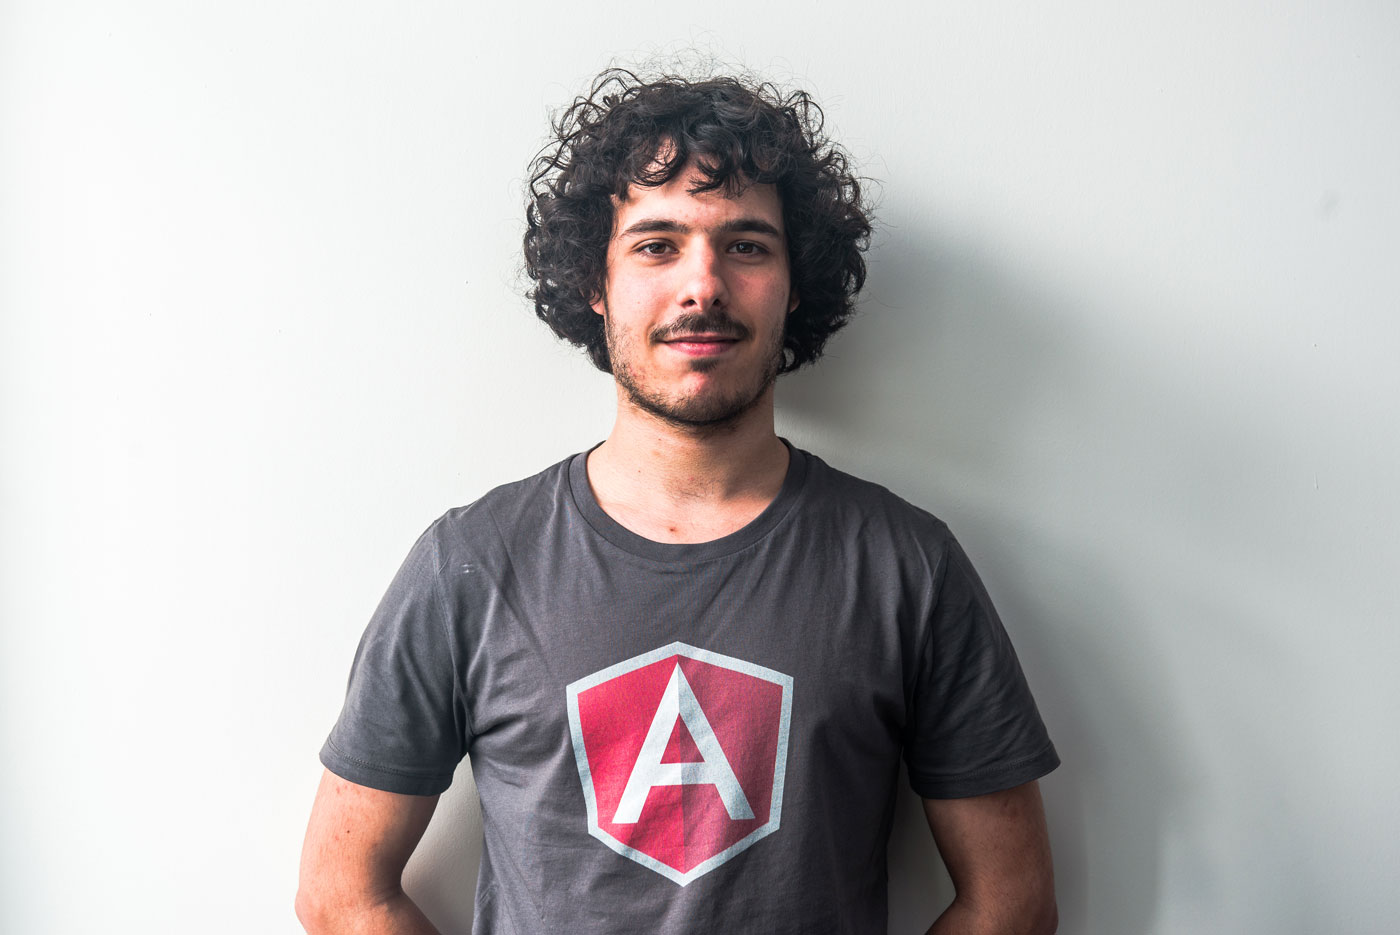 A warm welcome to our newest developer, Olivier